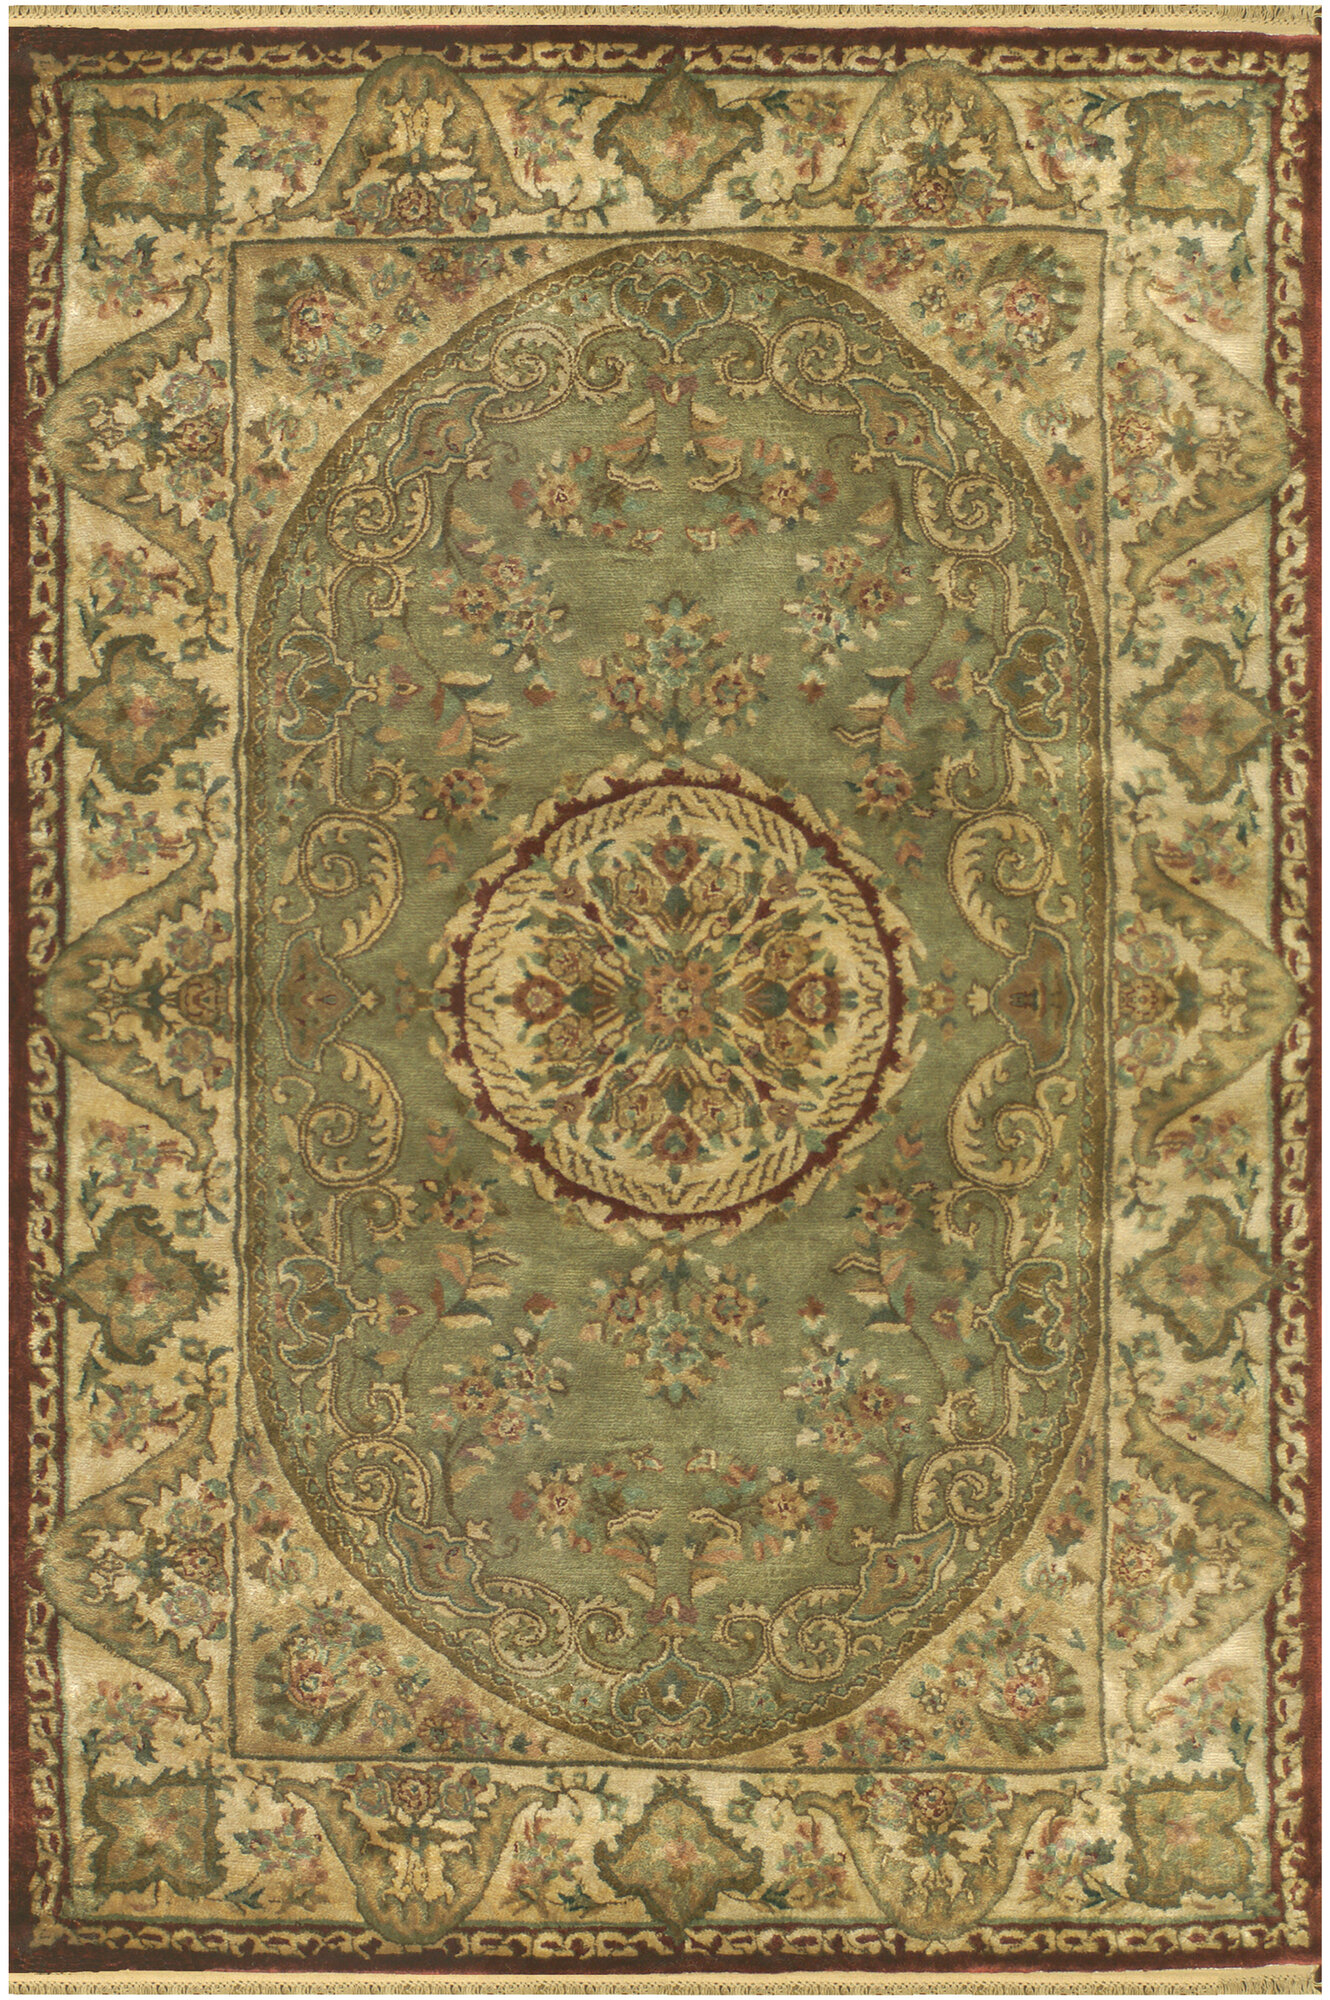 American Home Rug Co Savonnerie Hand Tufted Sage Green